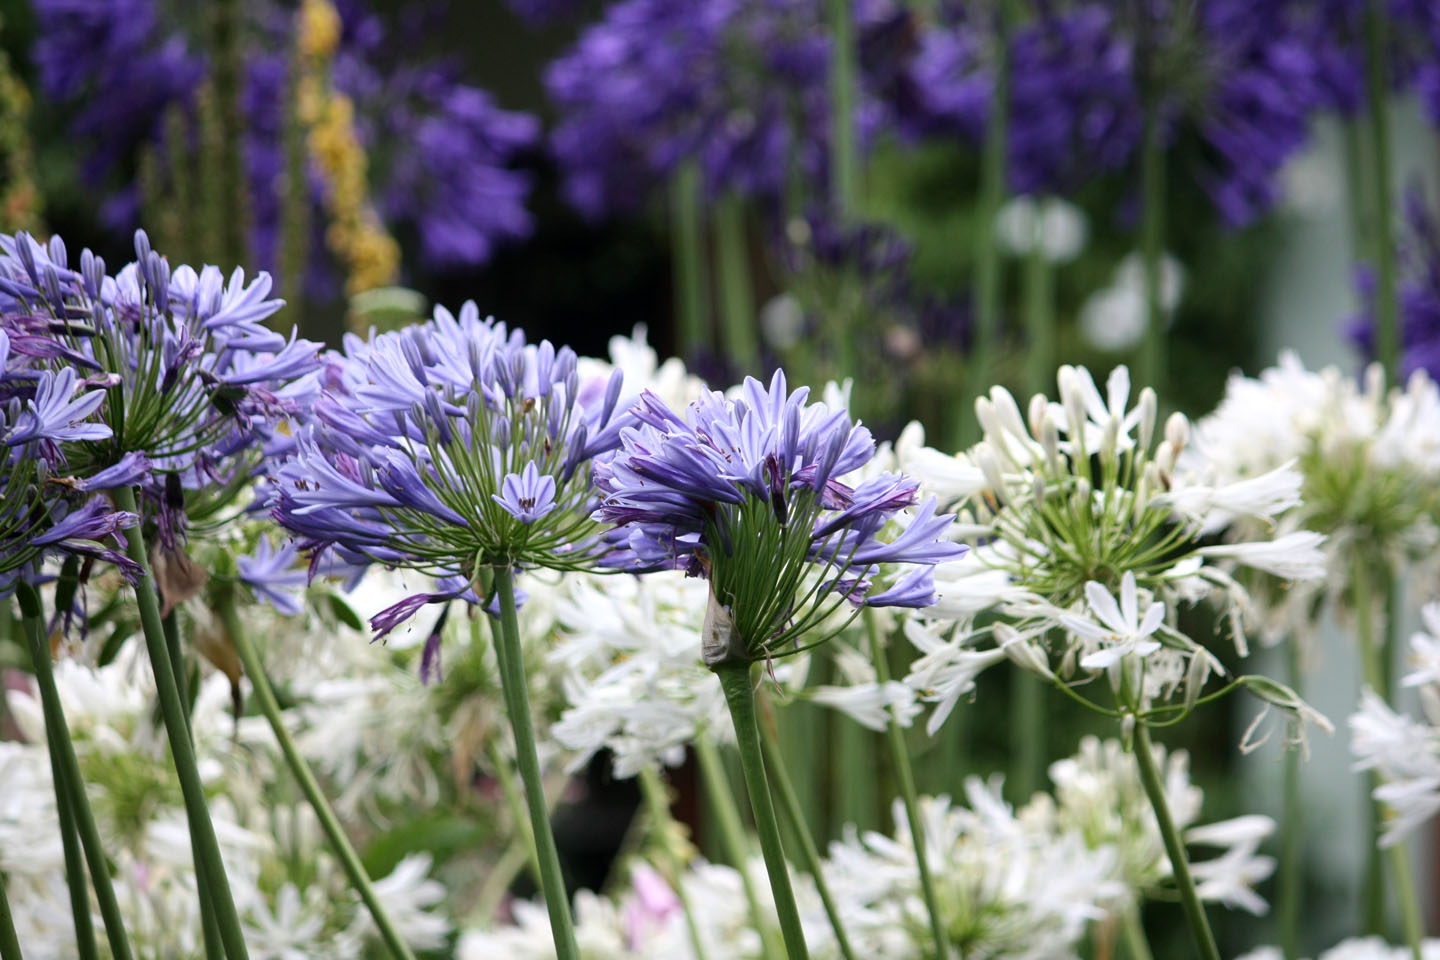 Agapanthus in rows